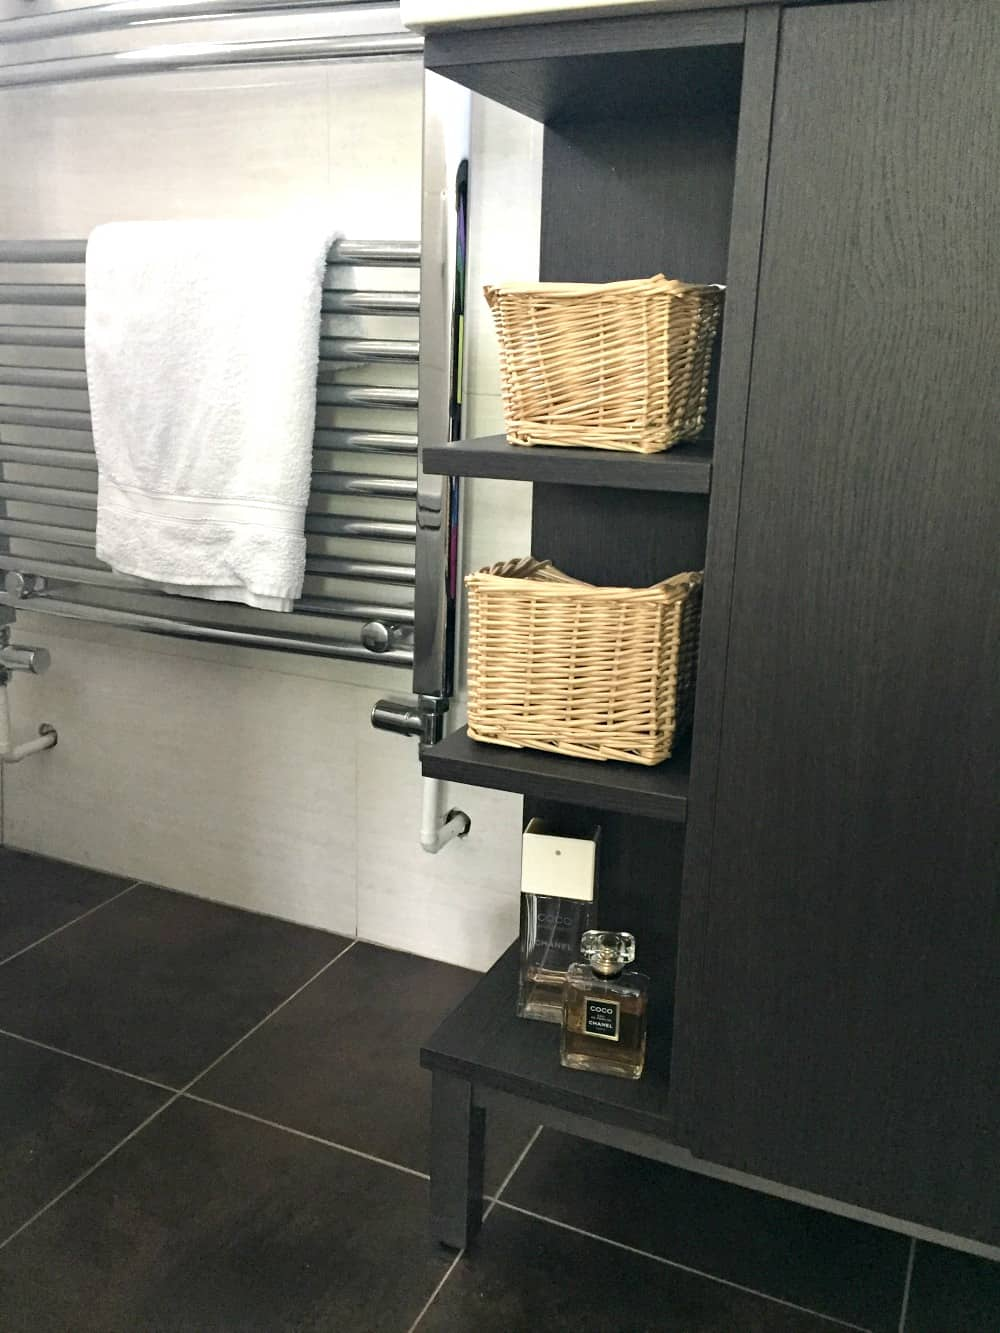 Basket storage on sink unit